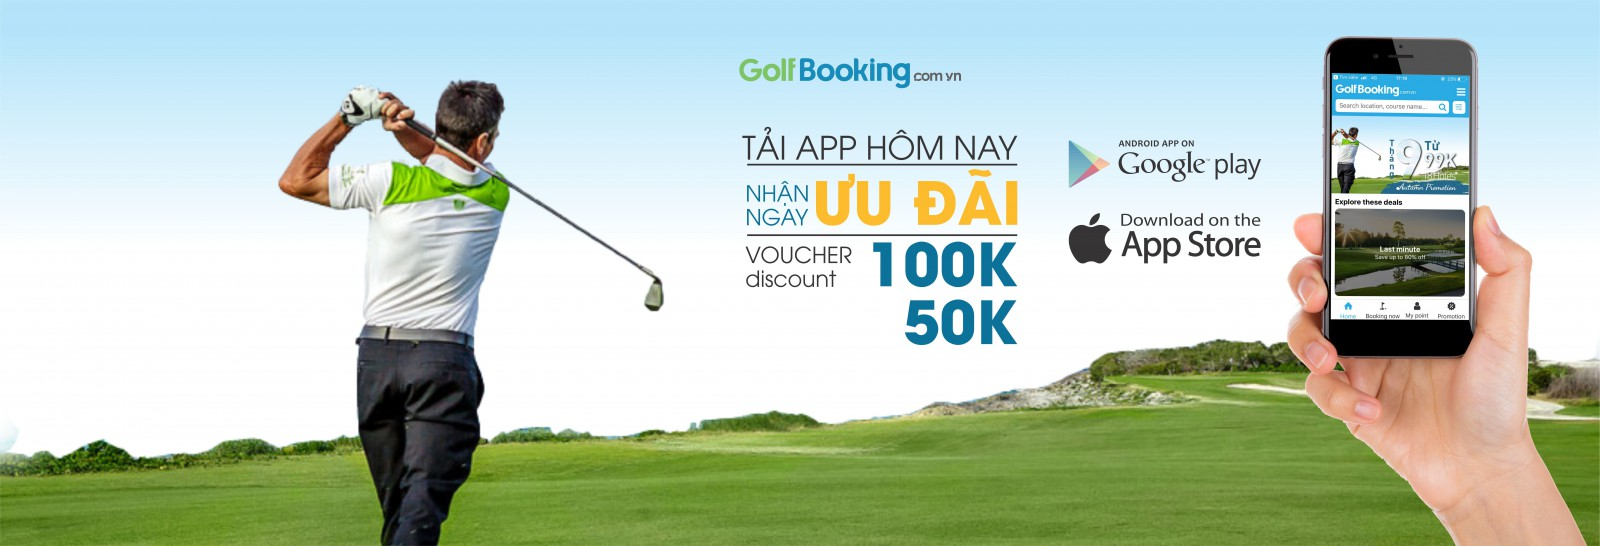 golf booking WEB